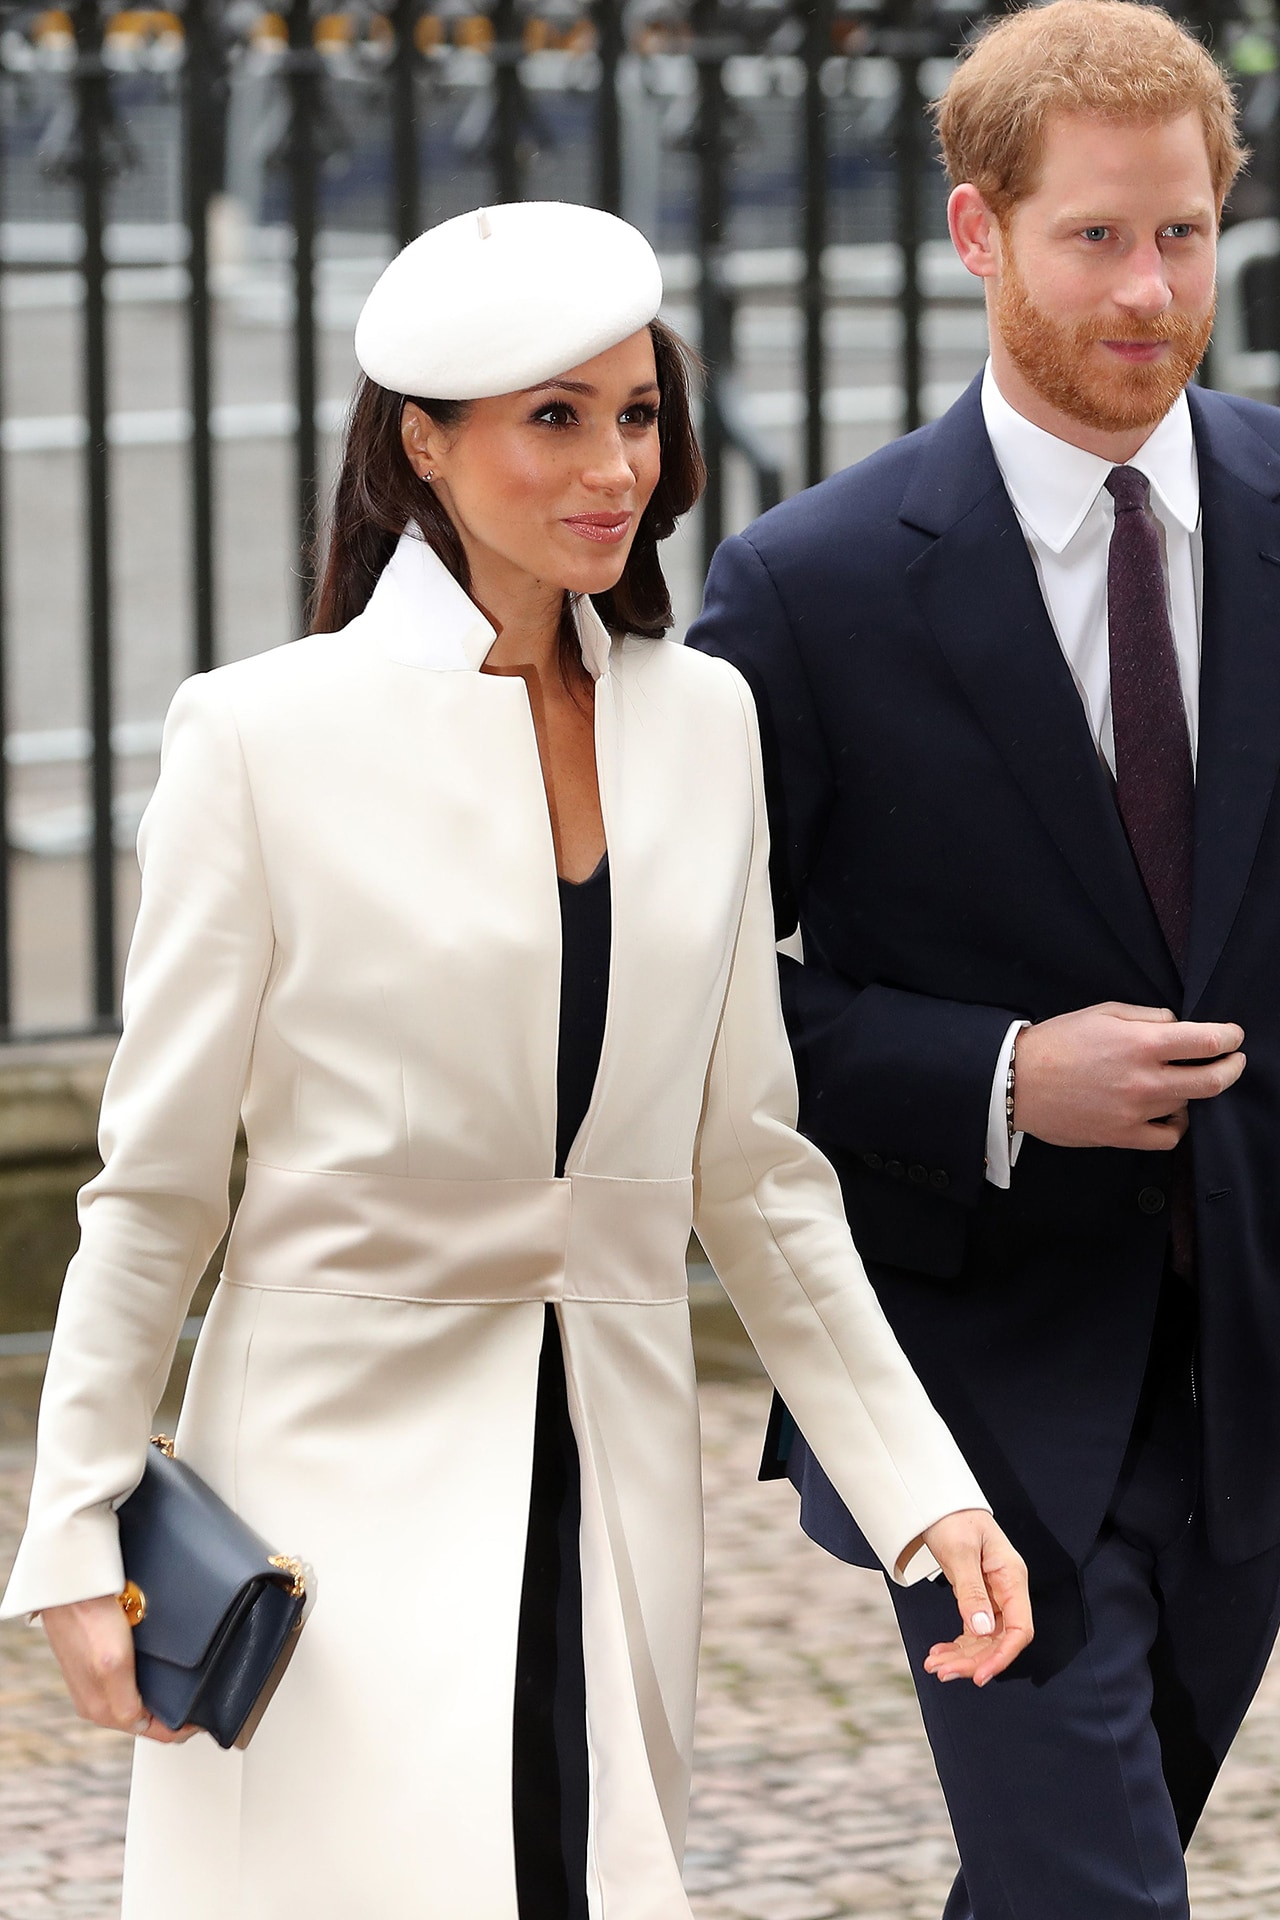 Dissecting everything Meghan Markle wore to her first royal engagement with the Queen